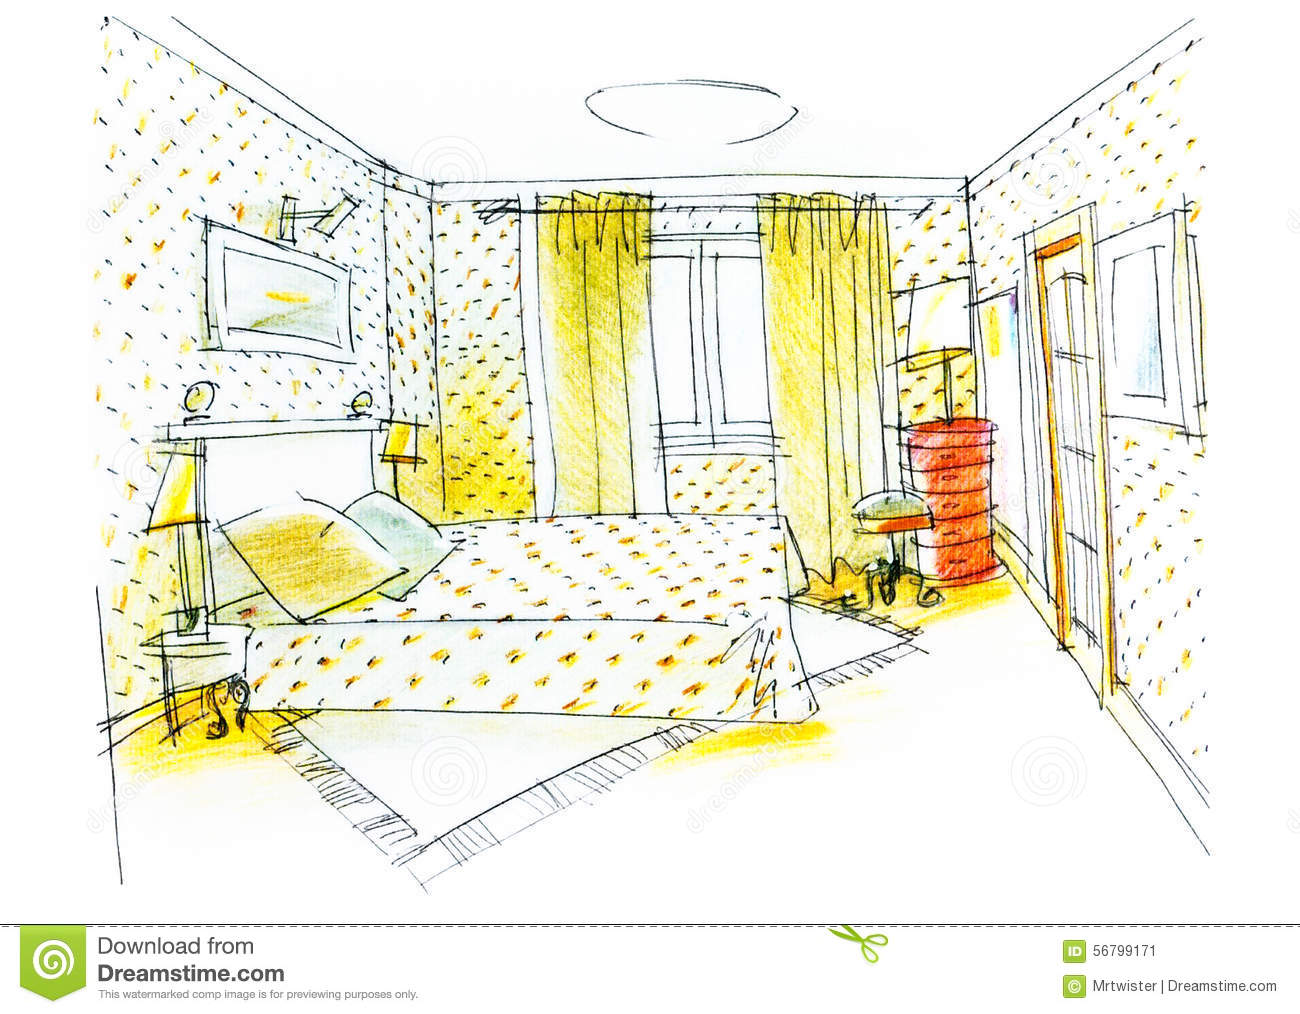 Bedroom drawing with color - Bedroom Drawing With Color Pencil